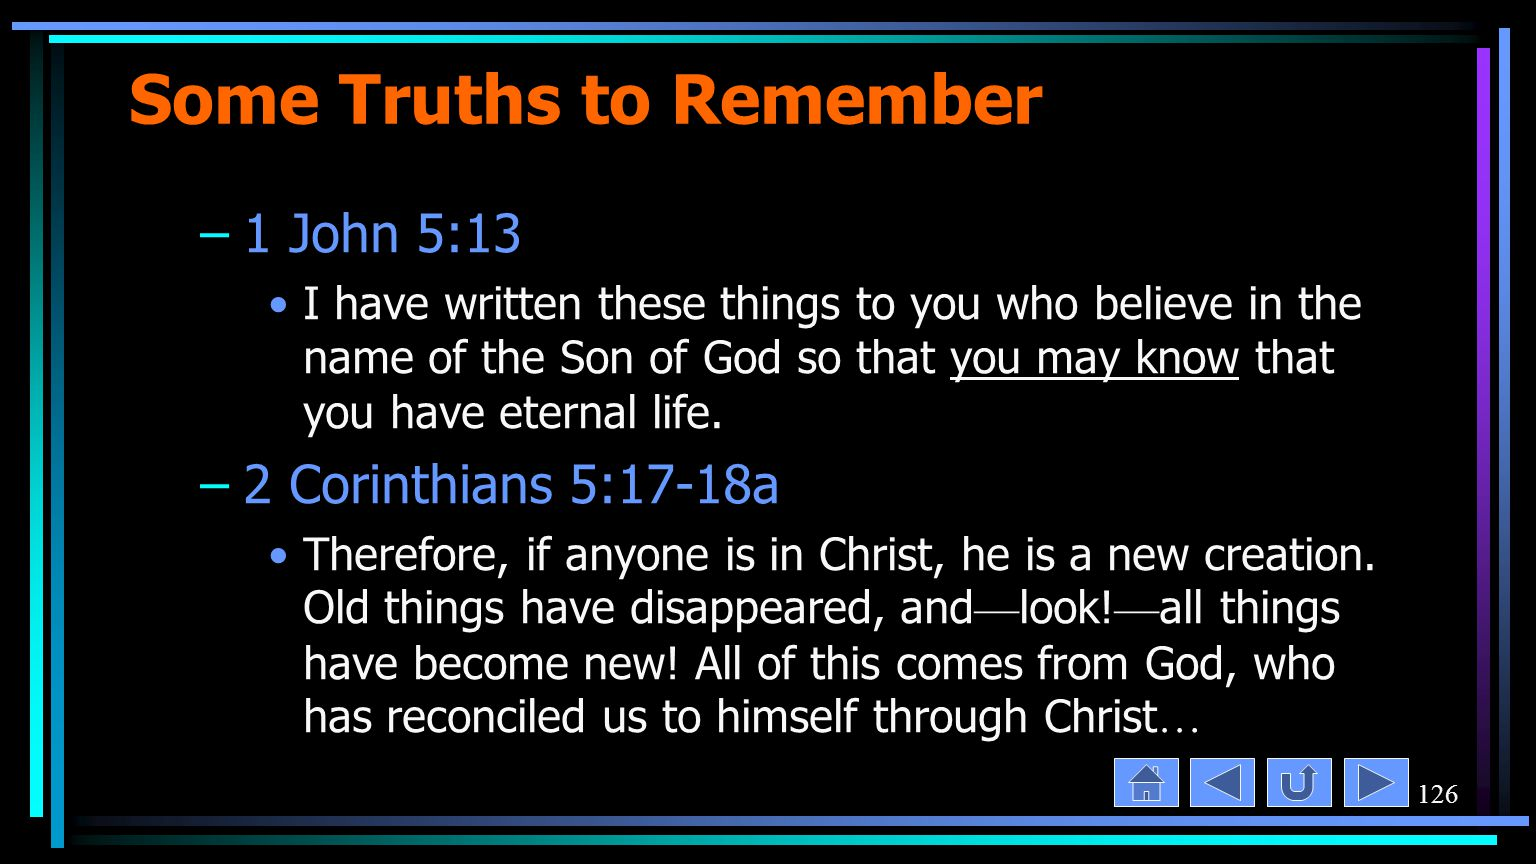 126 Some Truths to Remember –1 John 5:13 I have written these things to you who believe in the name of the Son of God so that you may know that you have eternal life.